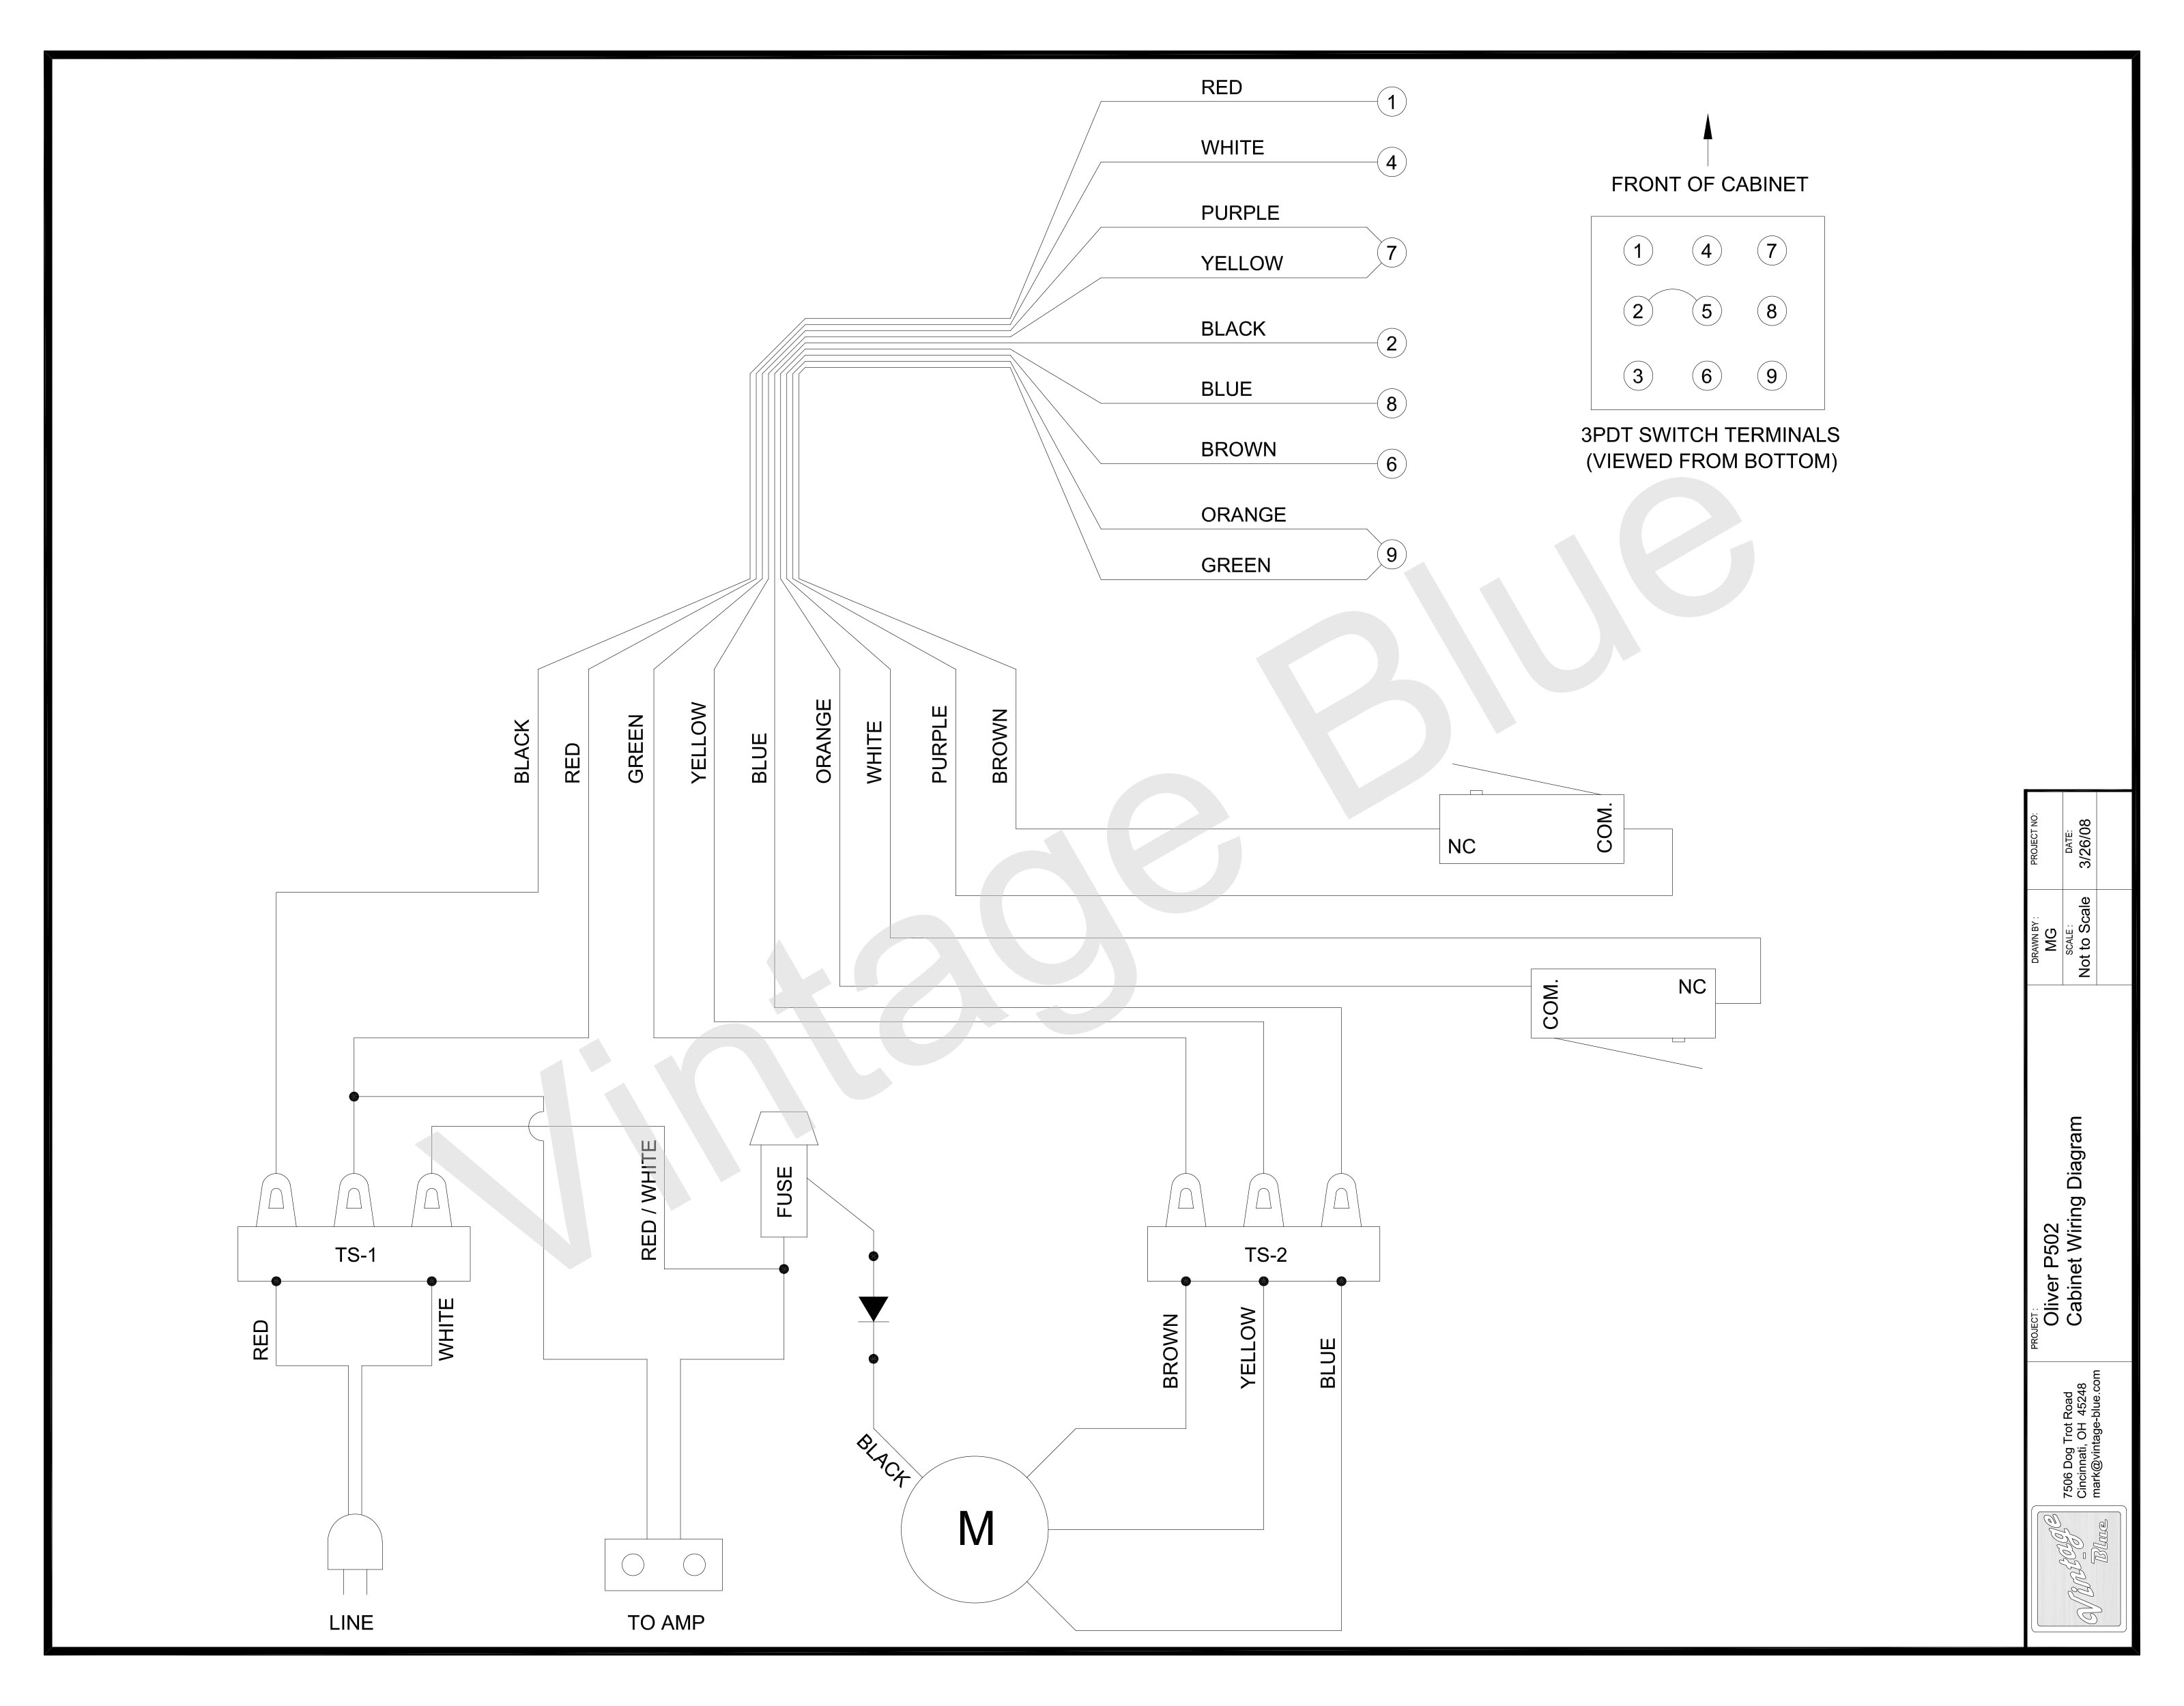 2002 Chevy Tahoe Factory Amp Wiring Diagram